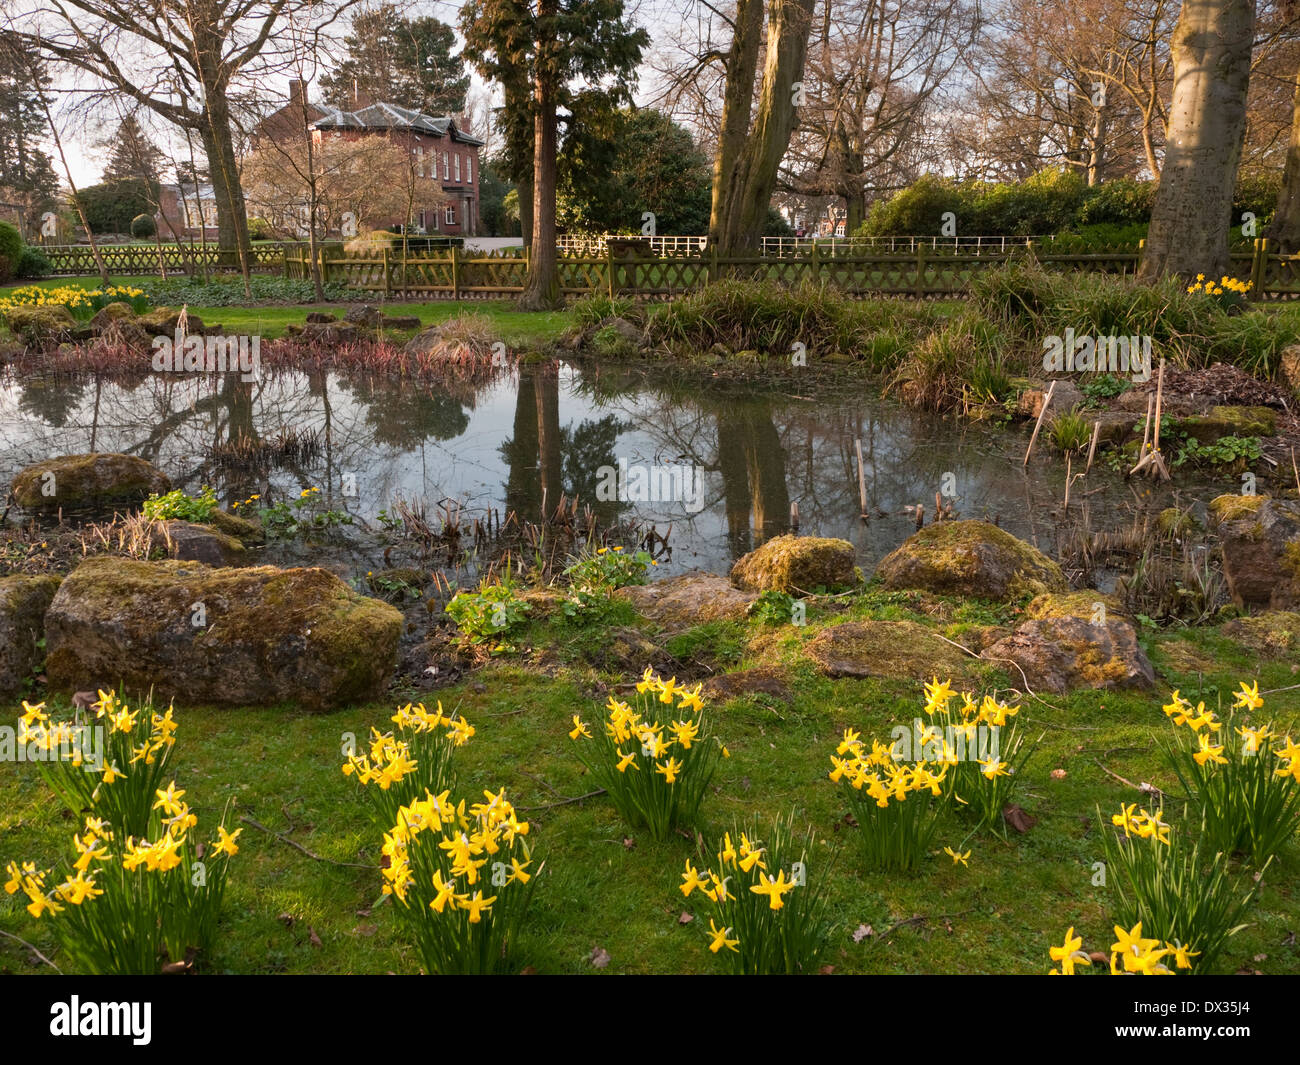 Bantock House and Park, Wolverhampton, West Midlands, UK - Stock Image